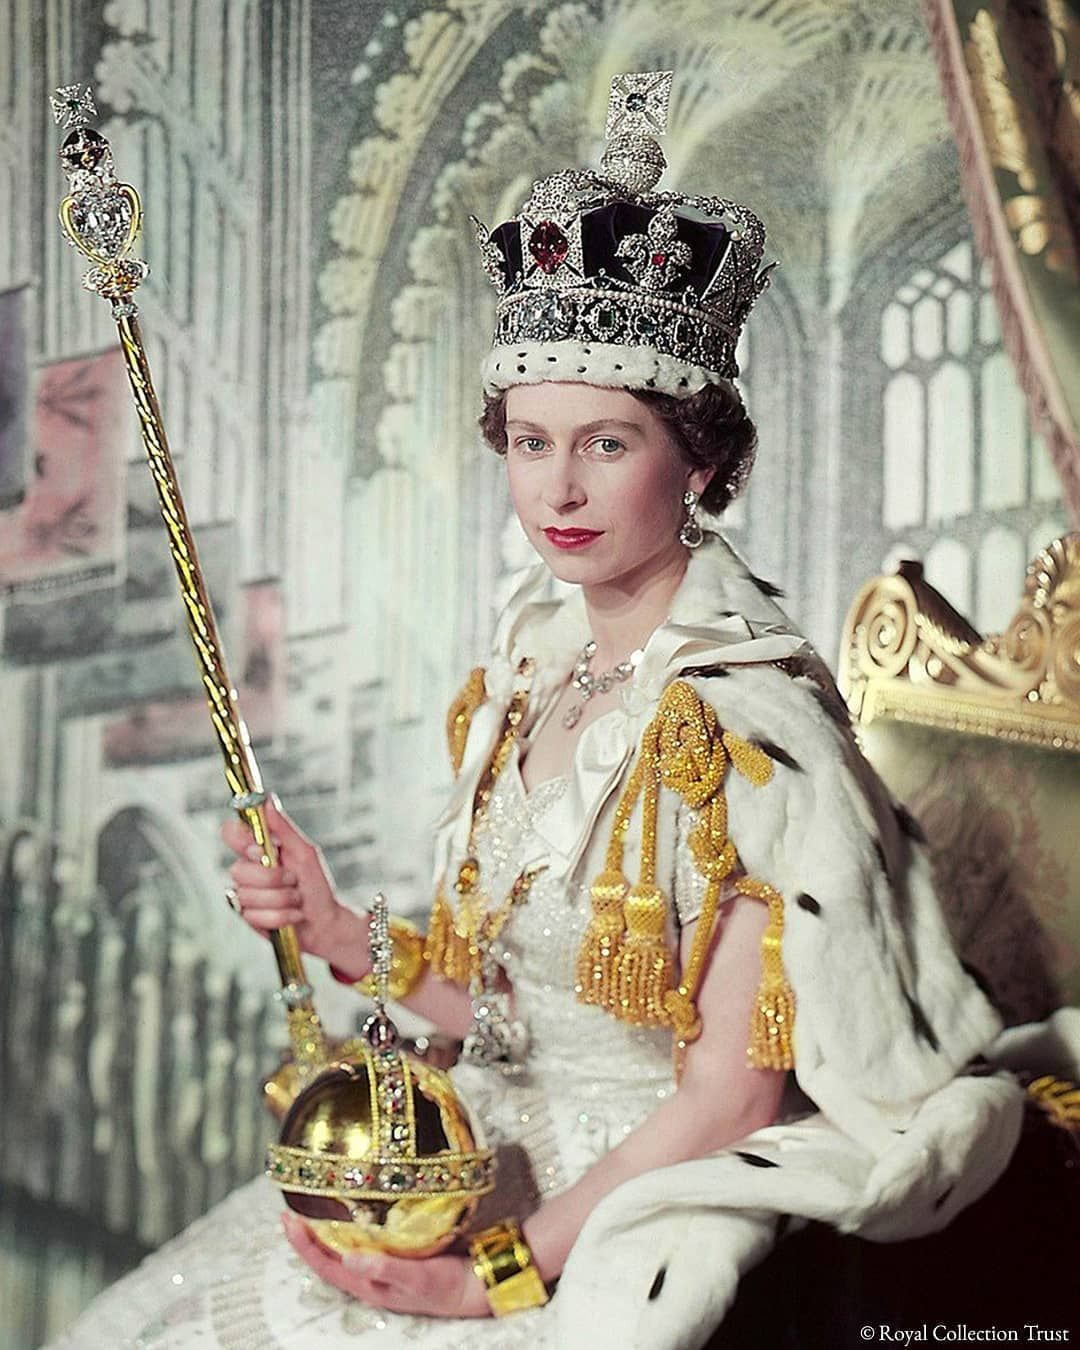 Queen Elizabeth Ii Fan Page On Instagram Today Marks The 67th Anniversary Of Her Majesty The Qu Queen S Coronation Her Majesty The Queen Queen Elizabeth Ii